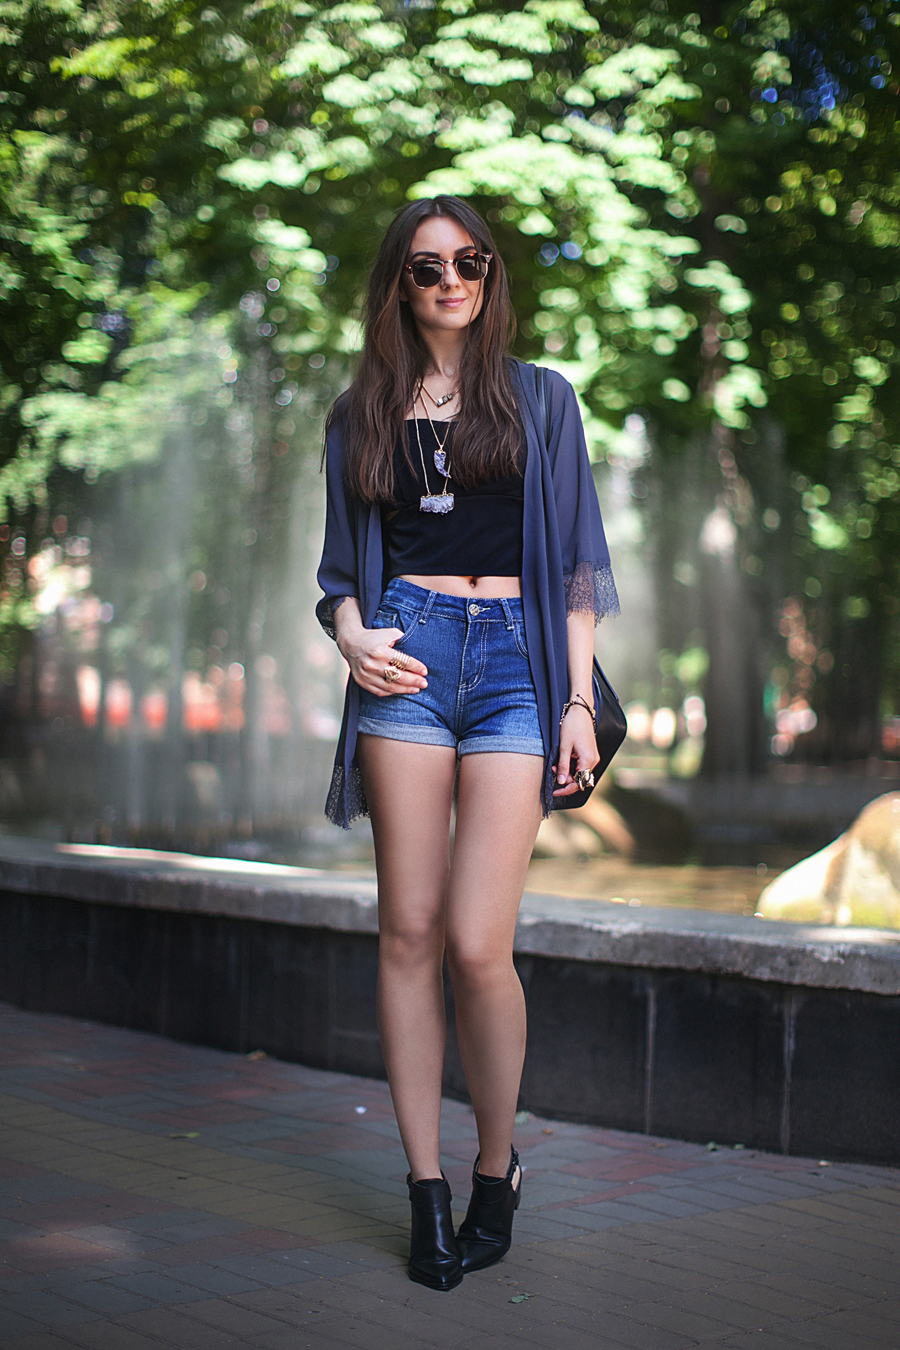 fashion_blog_ukraine_bohemian_look_outfit_kimono_denim